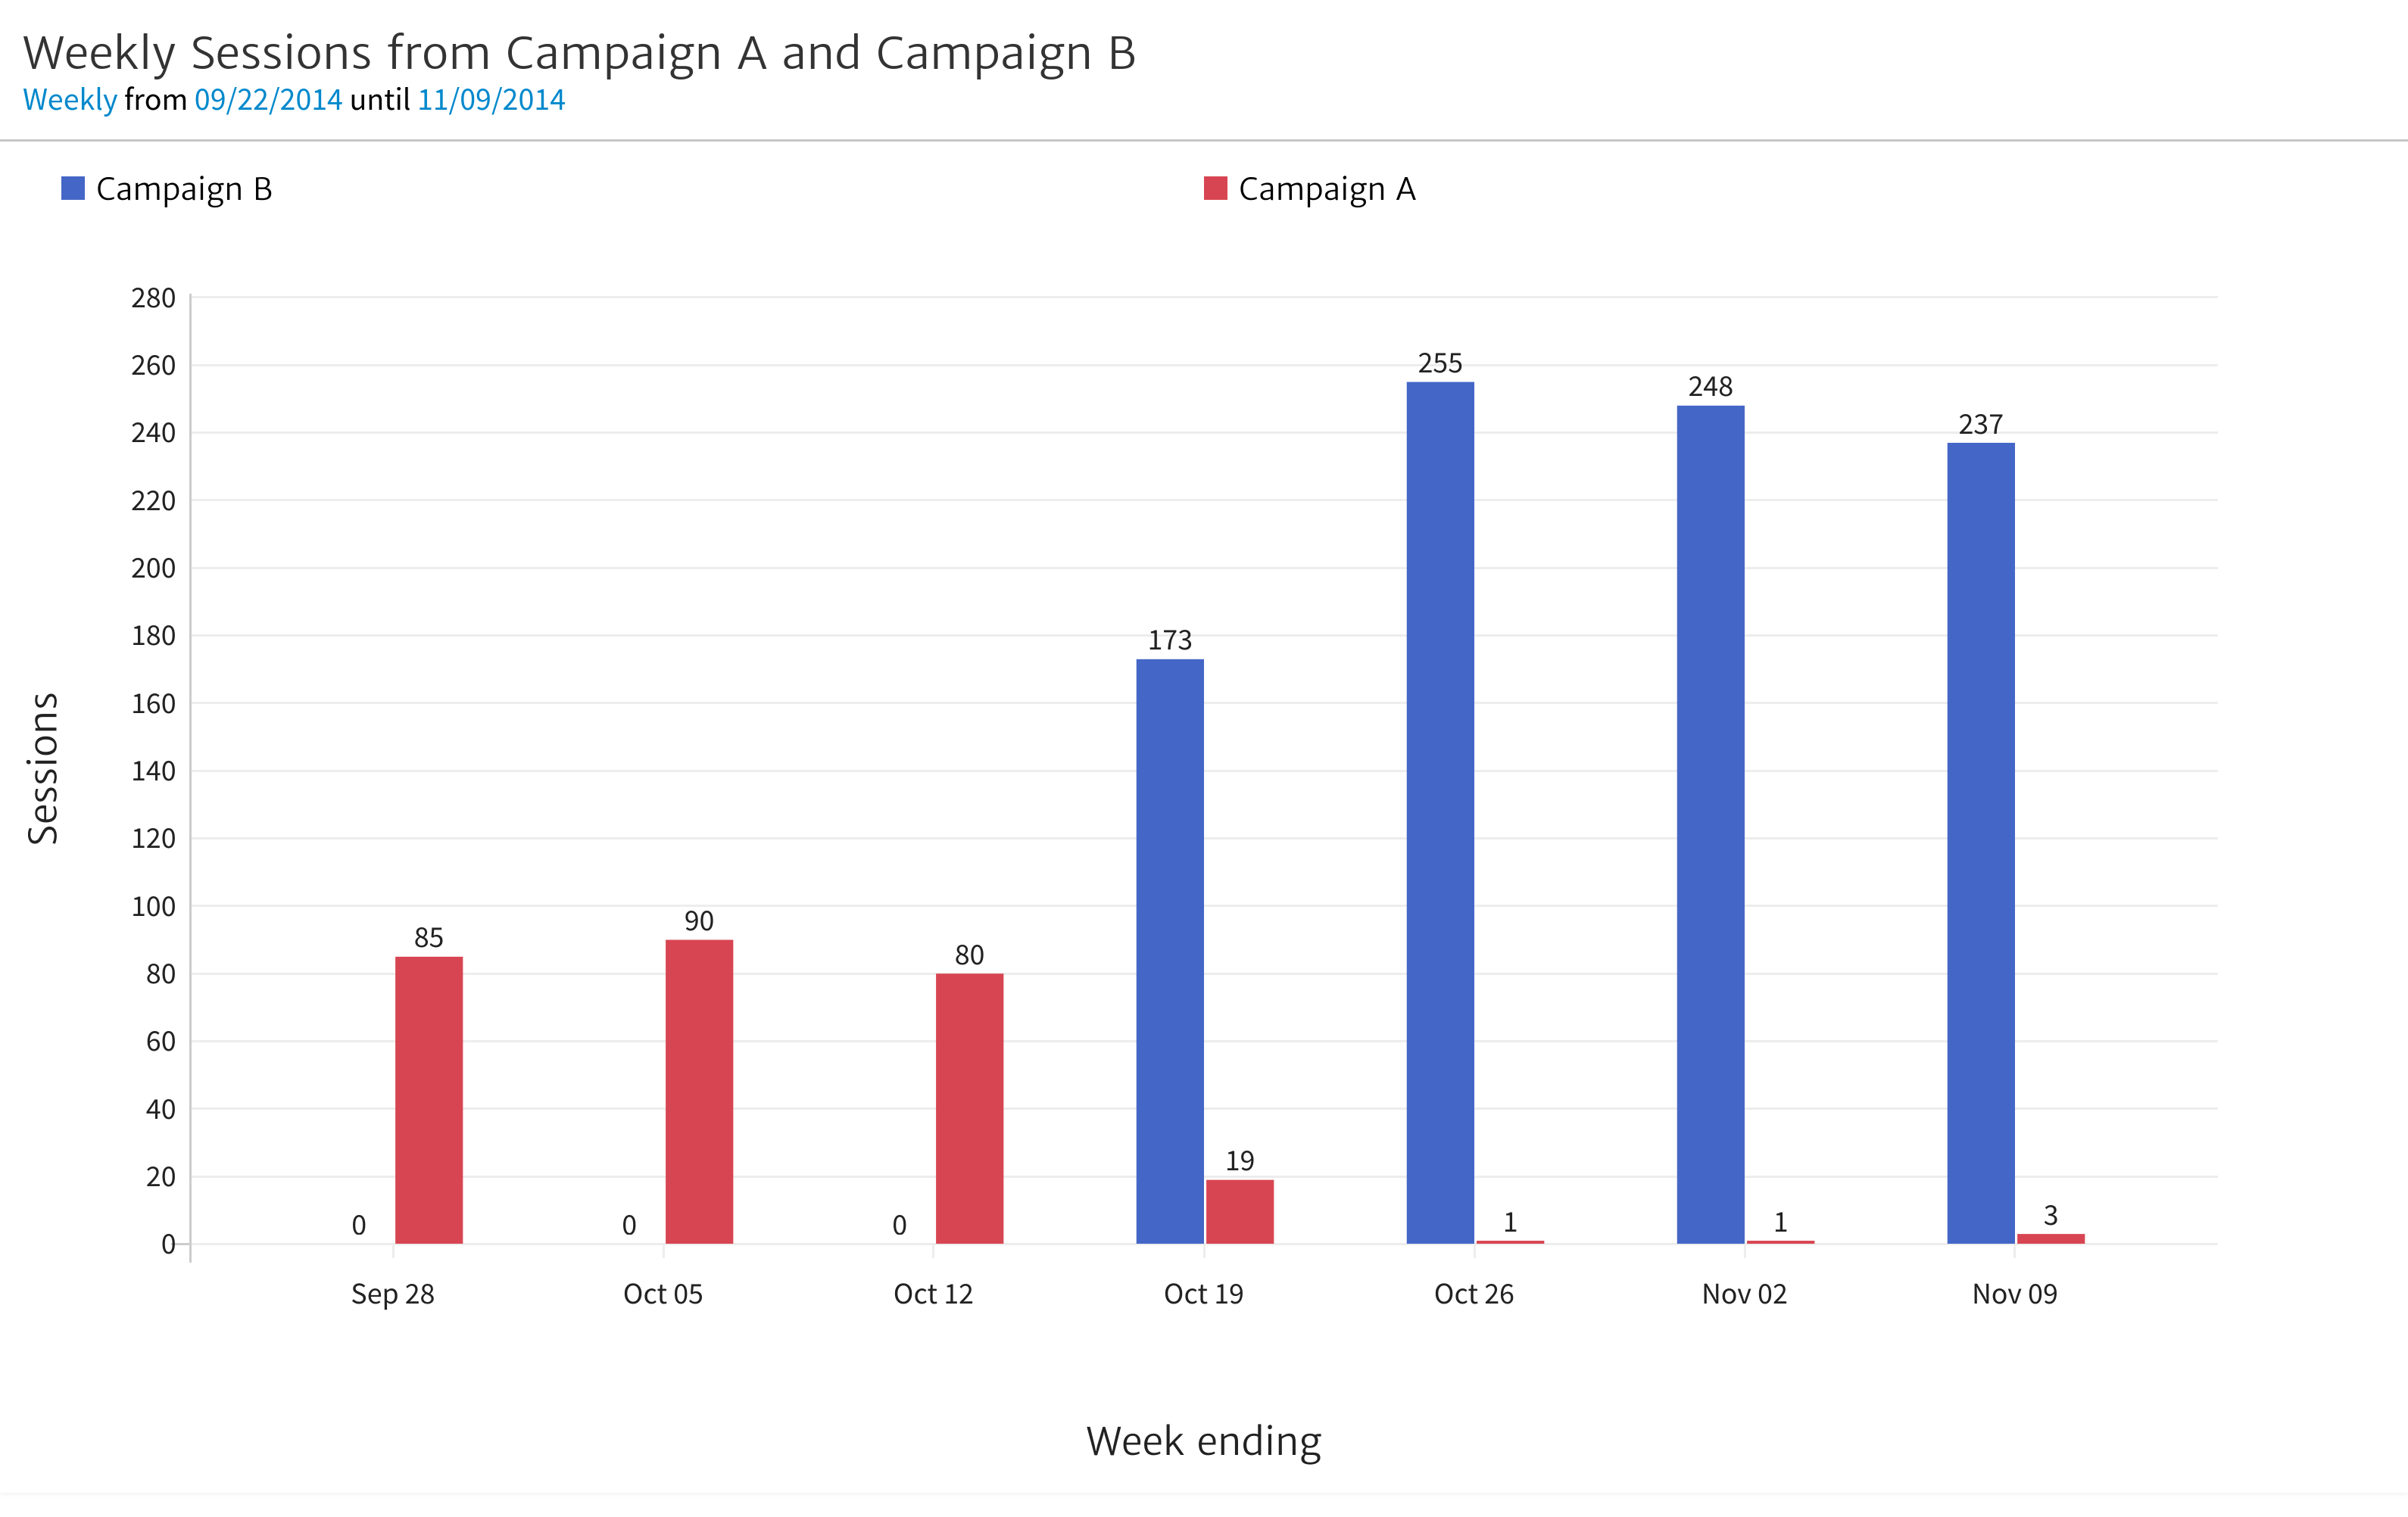 Weekly Sessions from Campaign A and Campaign B